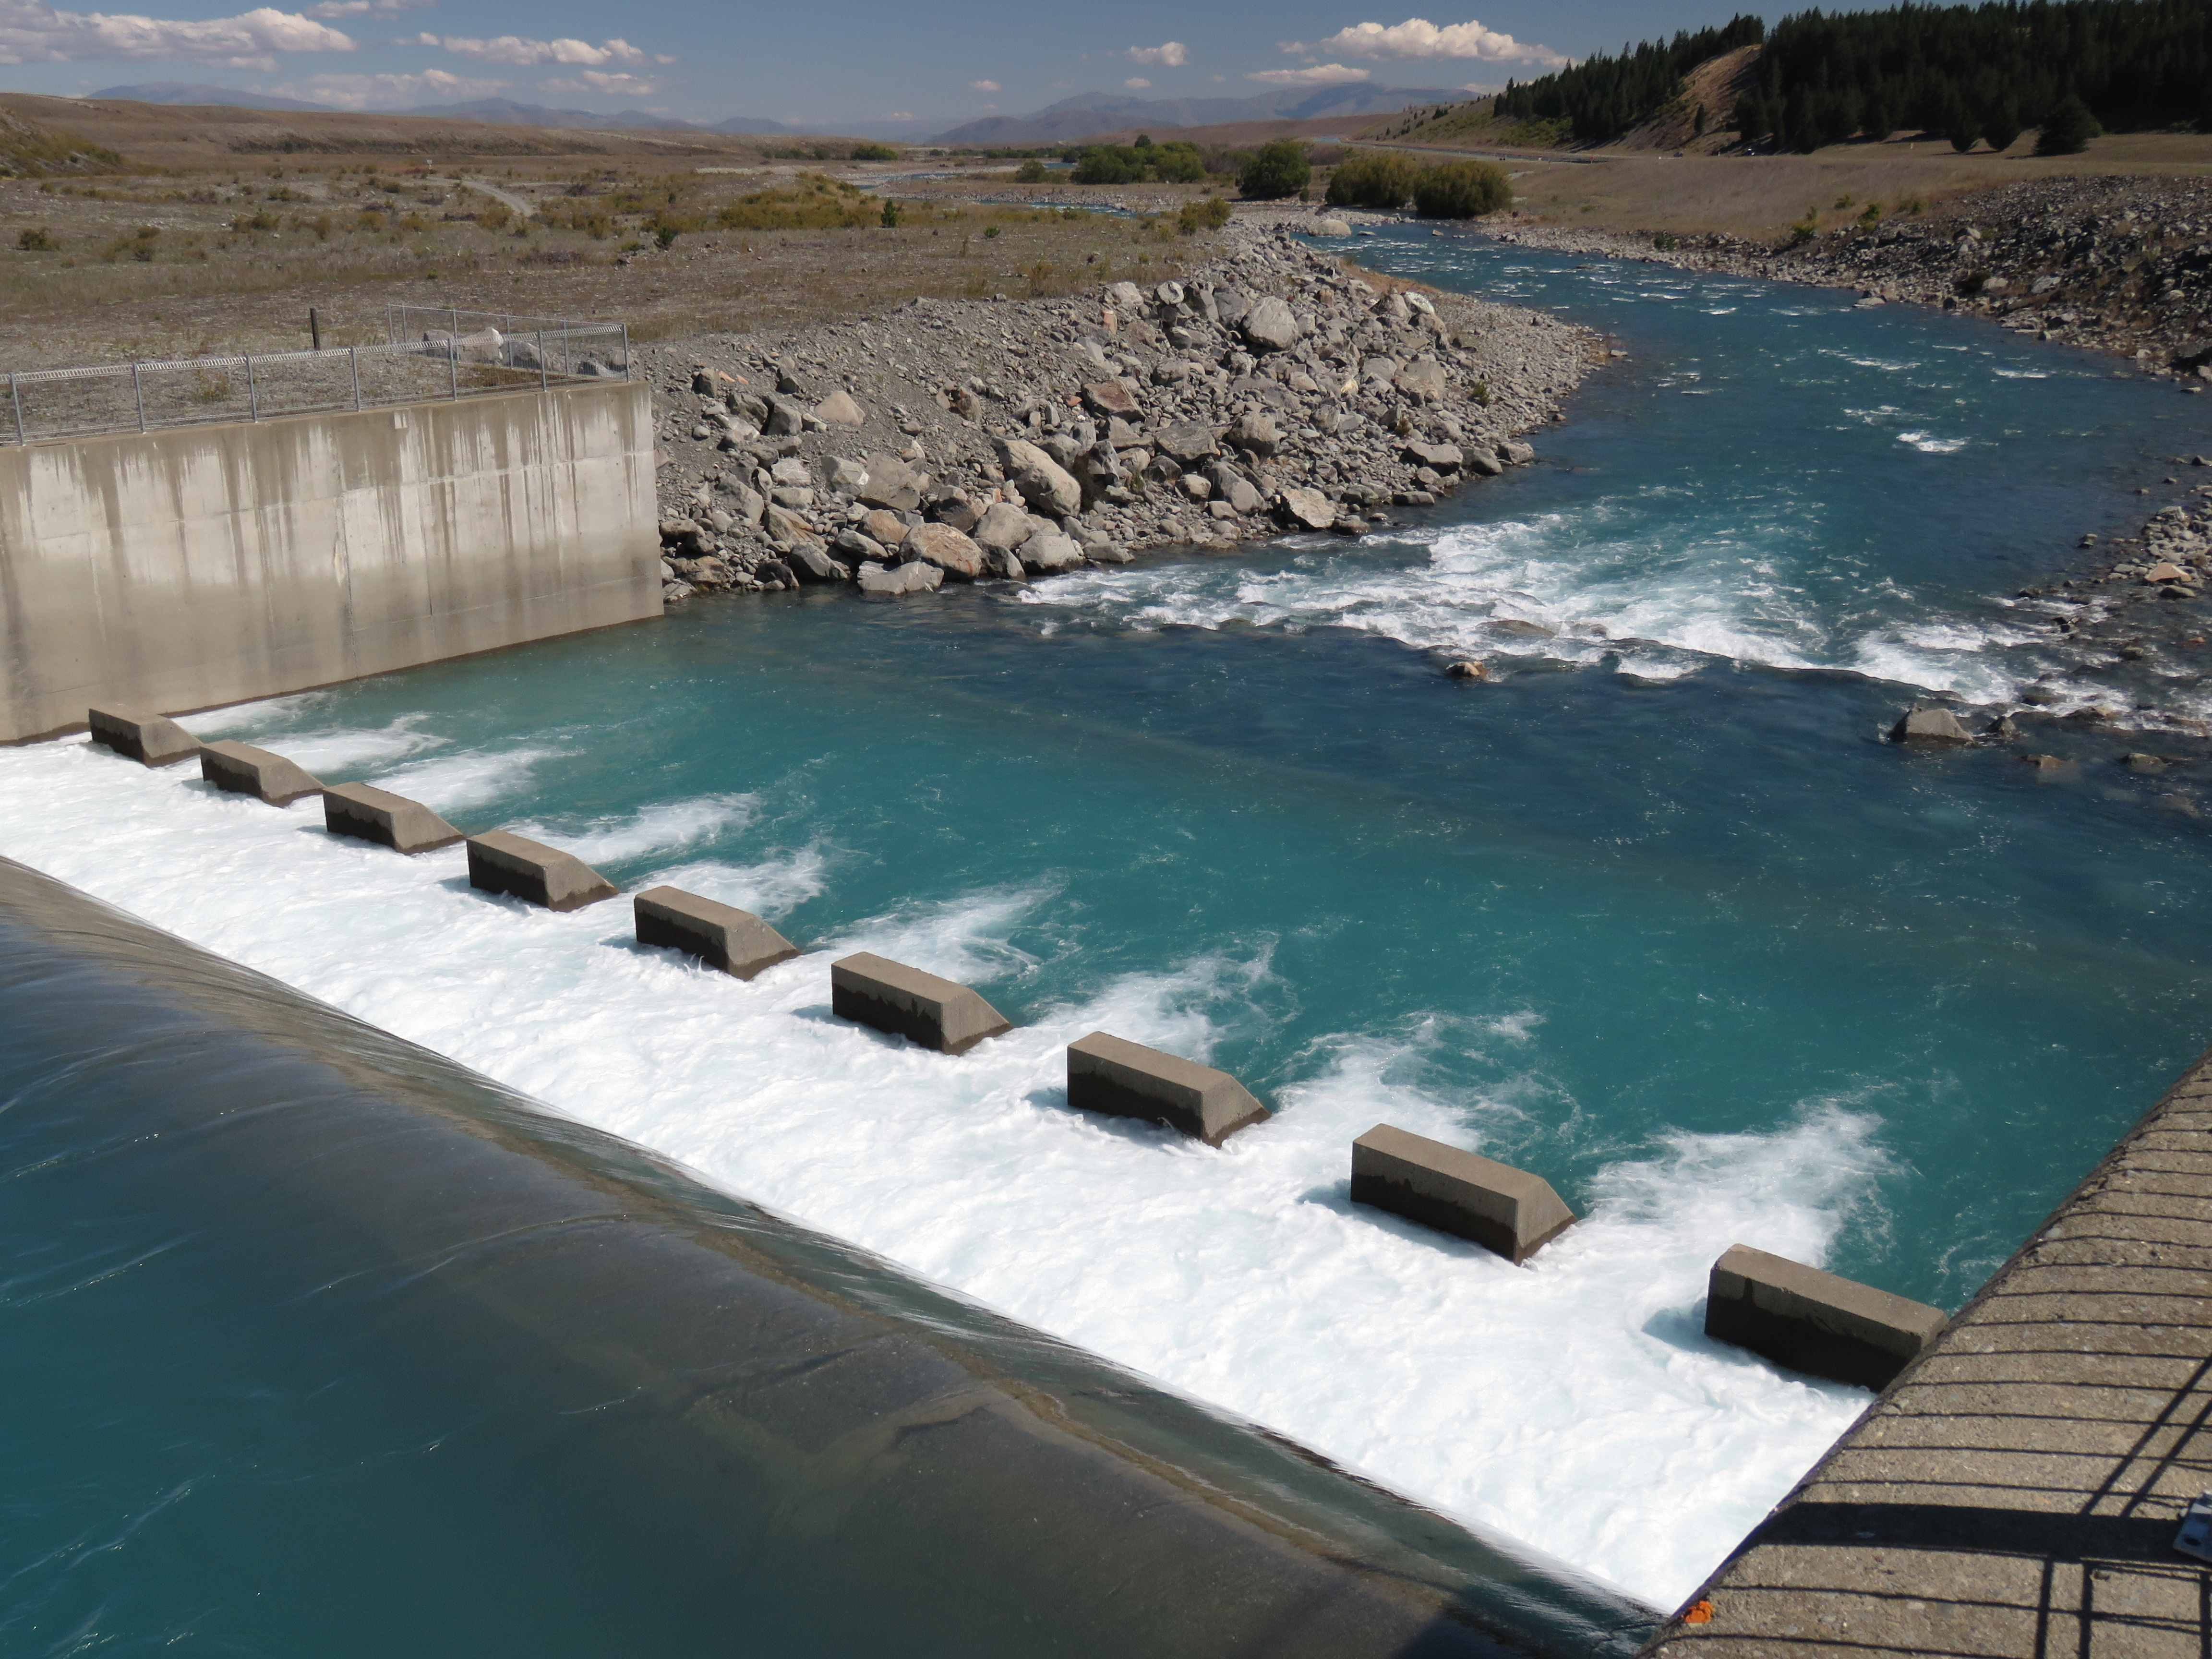 WFR1718.37 the Tekapo River Spillway brings the upper Tekapo River back to life